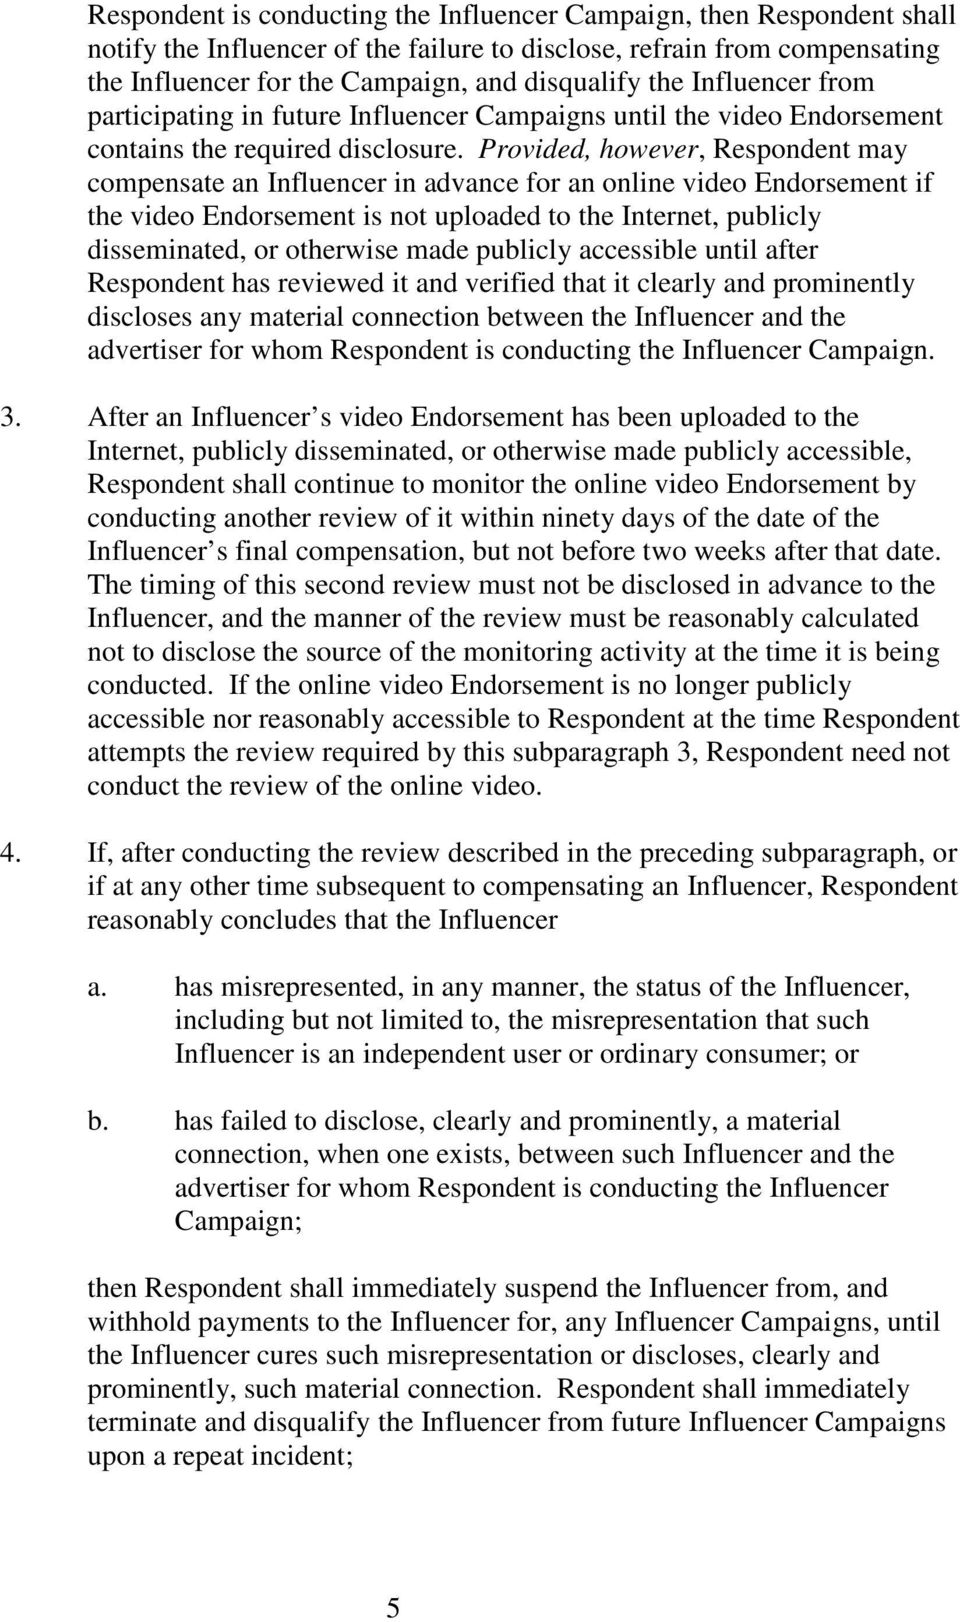 Provided, however, Respondent may compensate an Influencer in advance for an online video Endorsement if the video Endorsement is not uploaded to the Internet, publicly disseminated, or otherwise